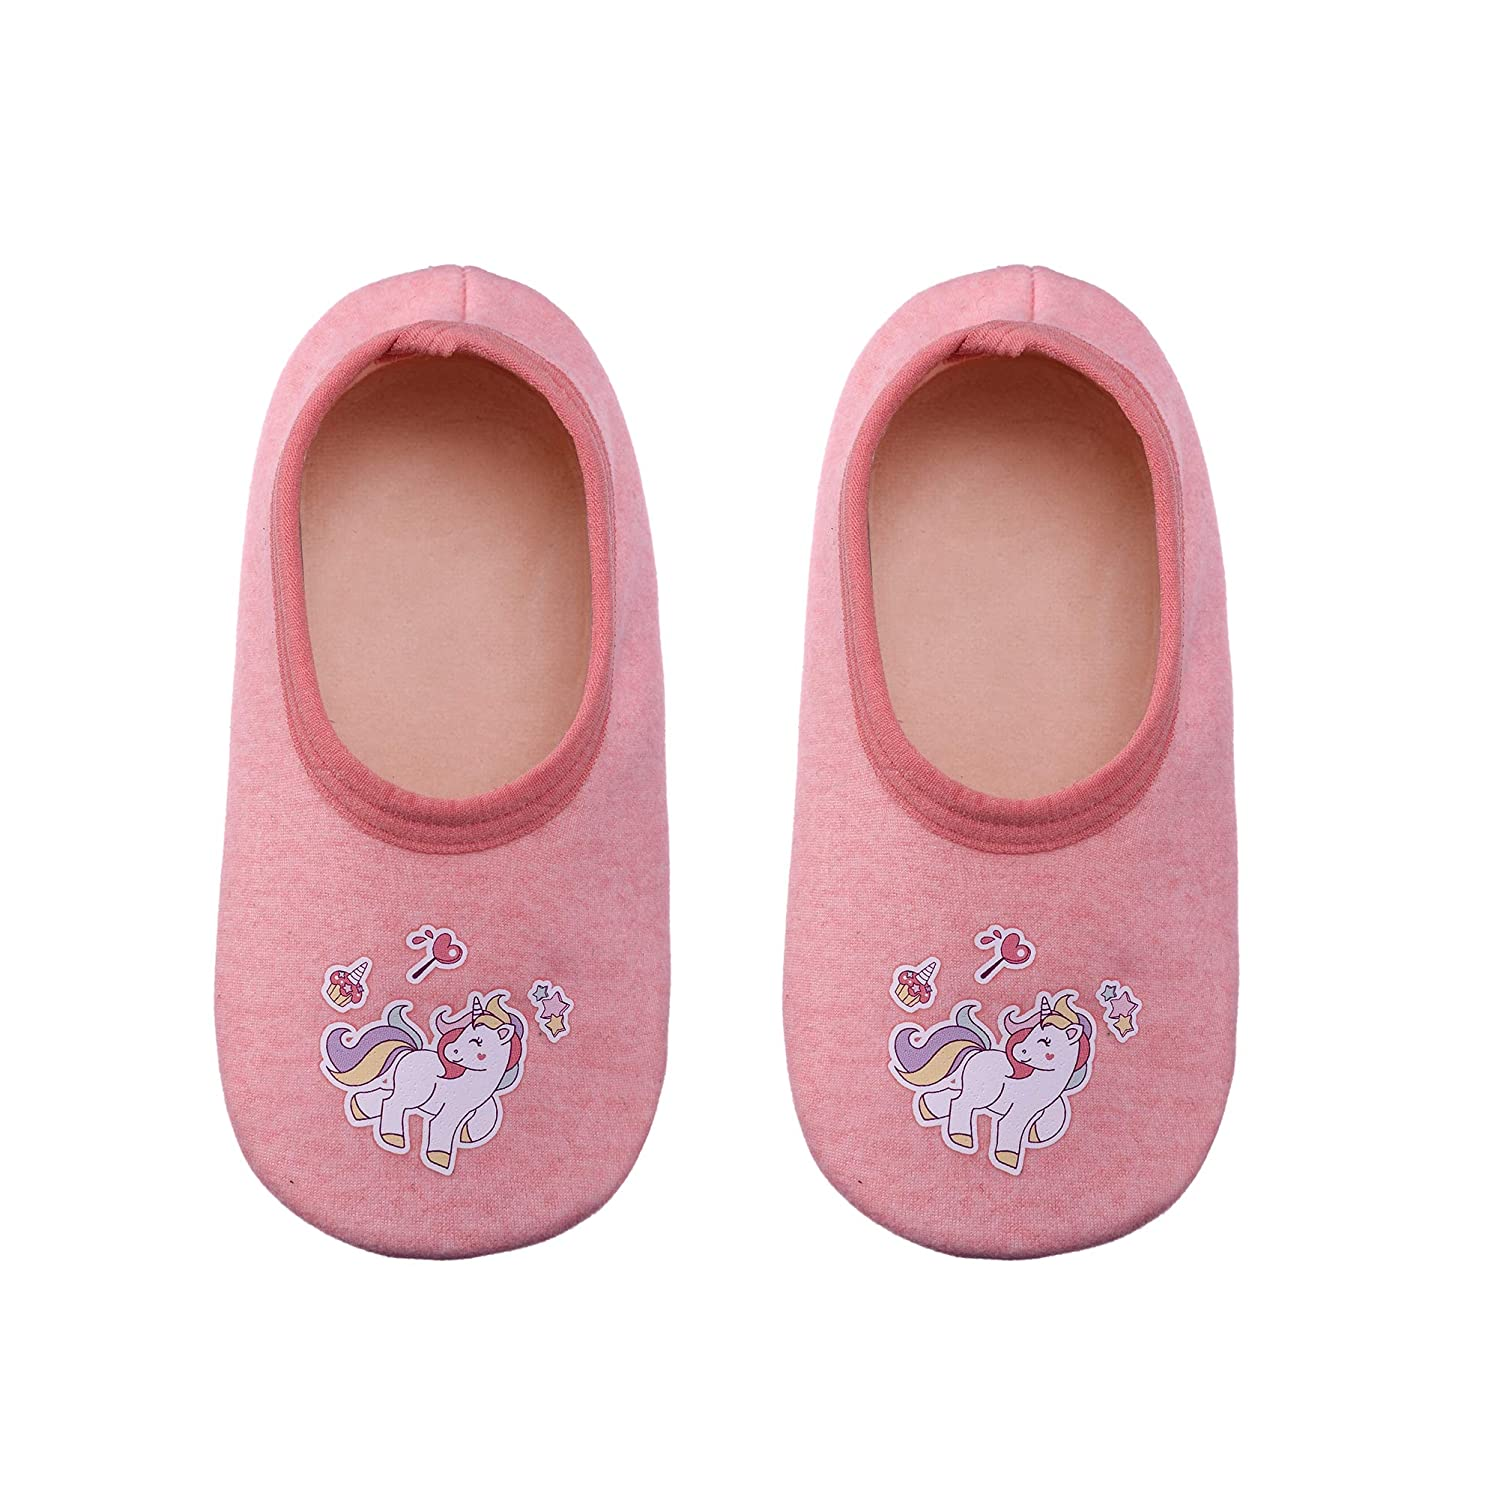 FANZERO Baby Toddler Boys Girls Cotton Cute Cartoon Animal Non Skid Slippers Newborn Infant Warm Winter Crib Shoes